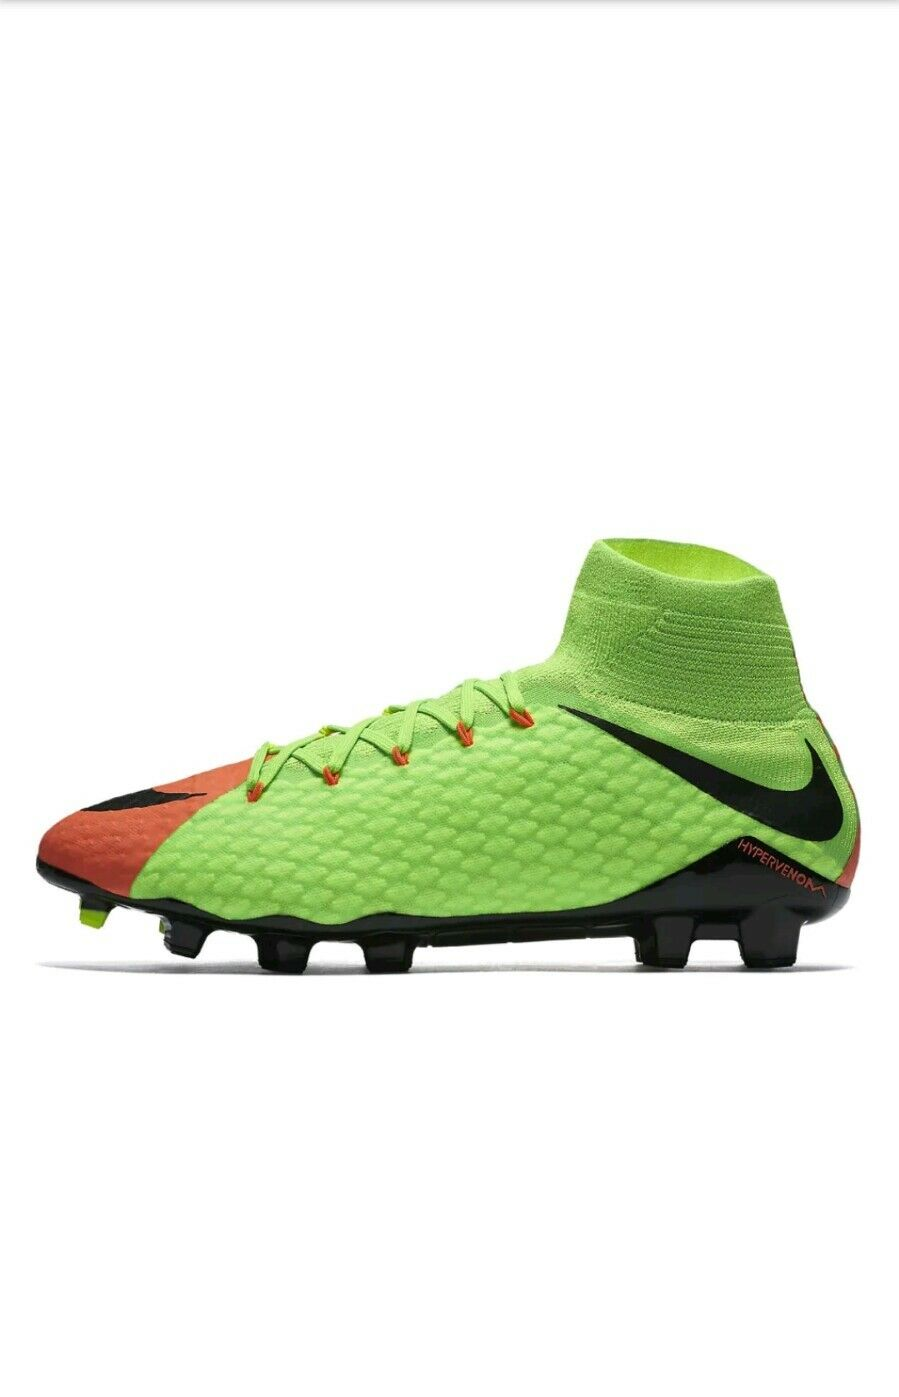 Mens Nike Hypervenom Phatal III FG Soccer Cleat 852554-308 Green Orange Comfortable Great discount